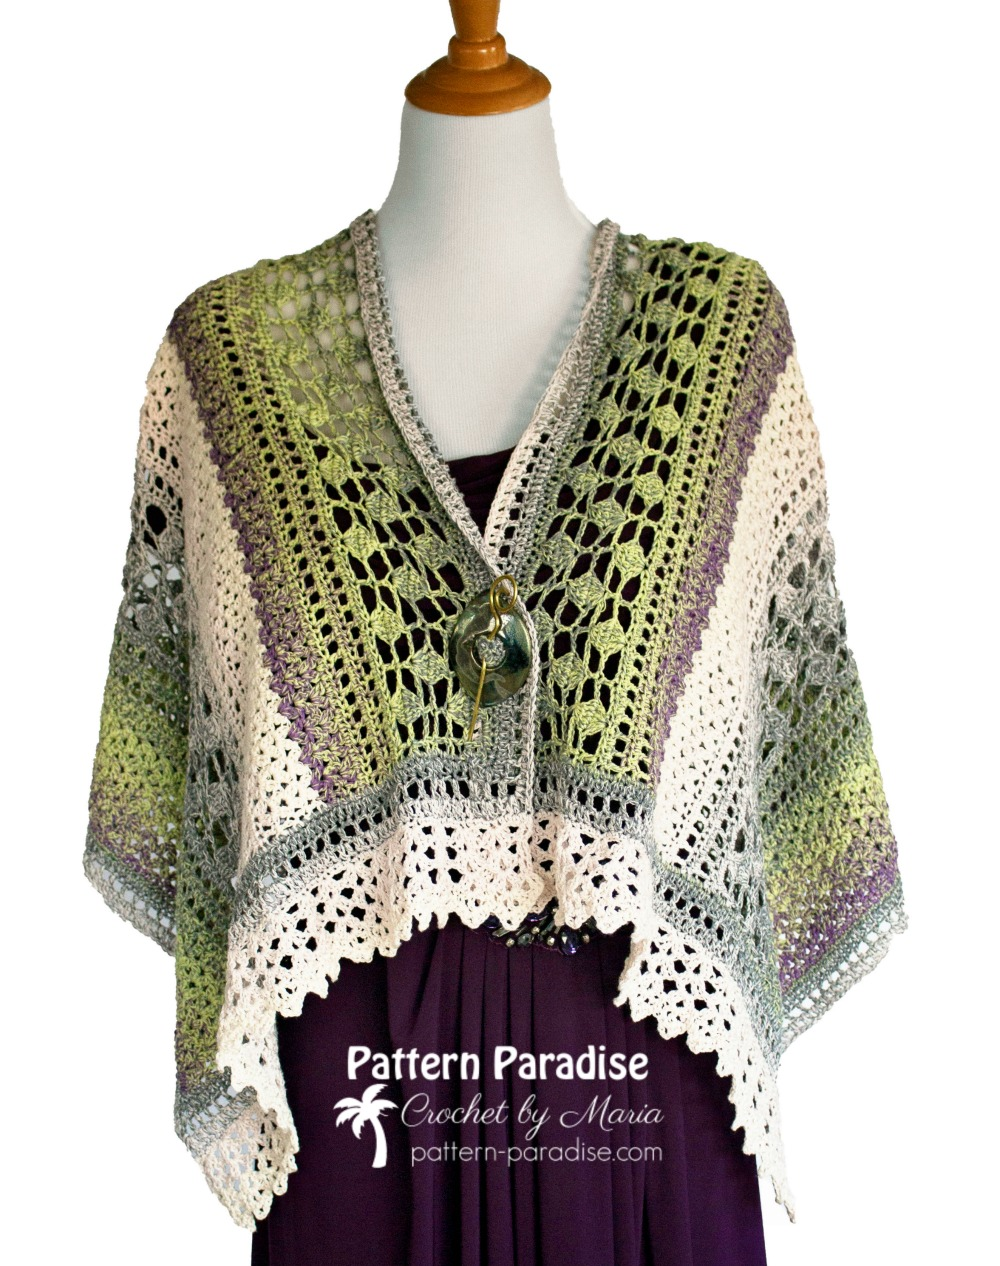 Winter Indulgence Wrap on Pattern-Paradise.com | A beautiful addition to your wardrobe anytime of year!